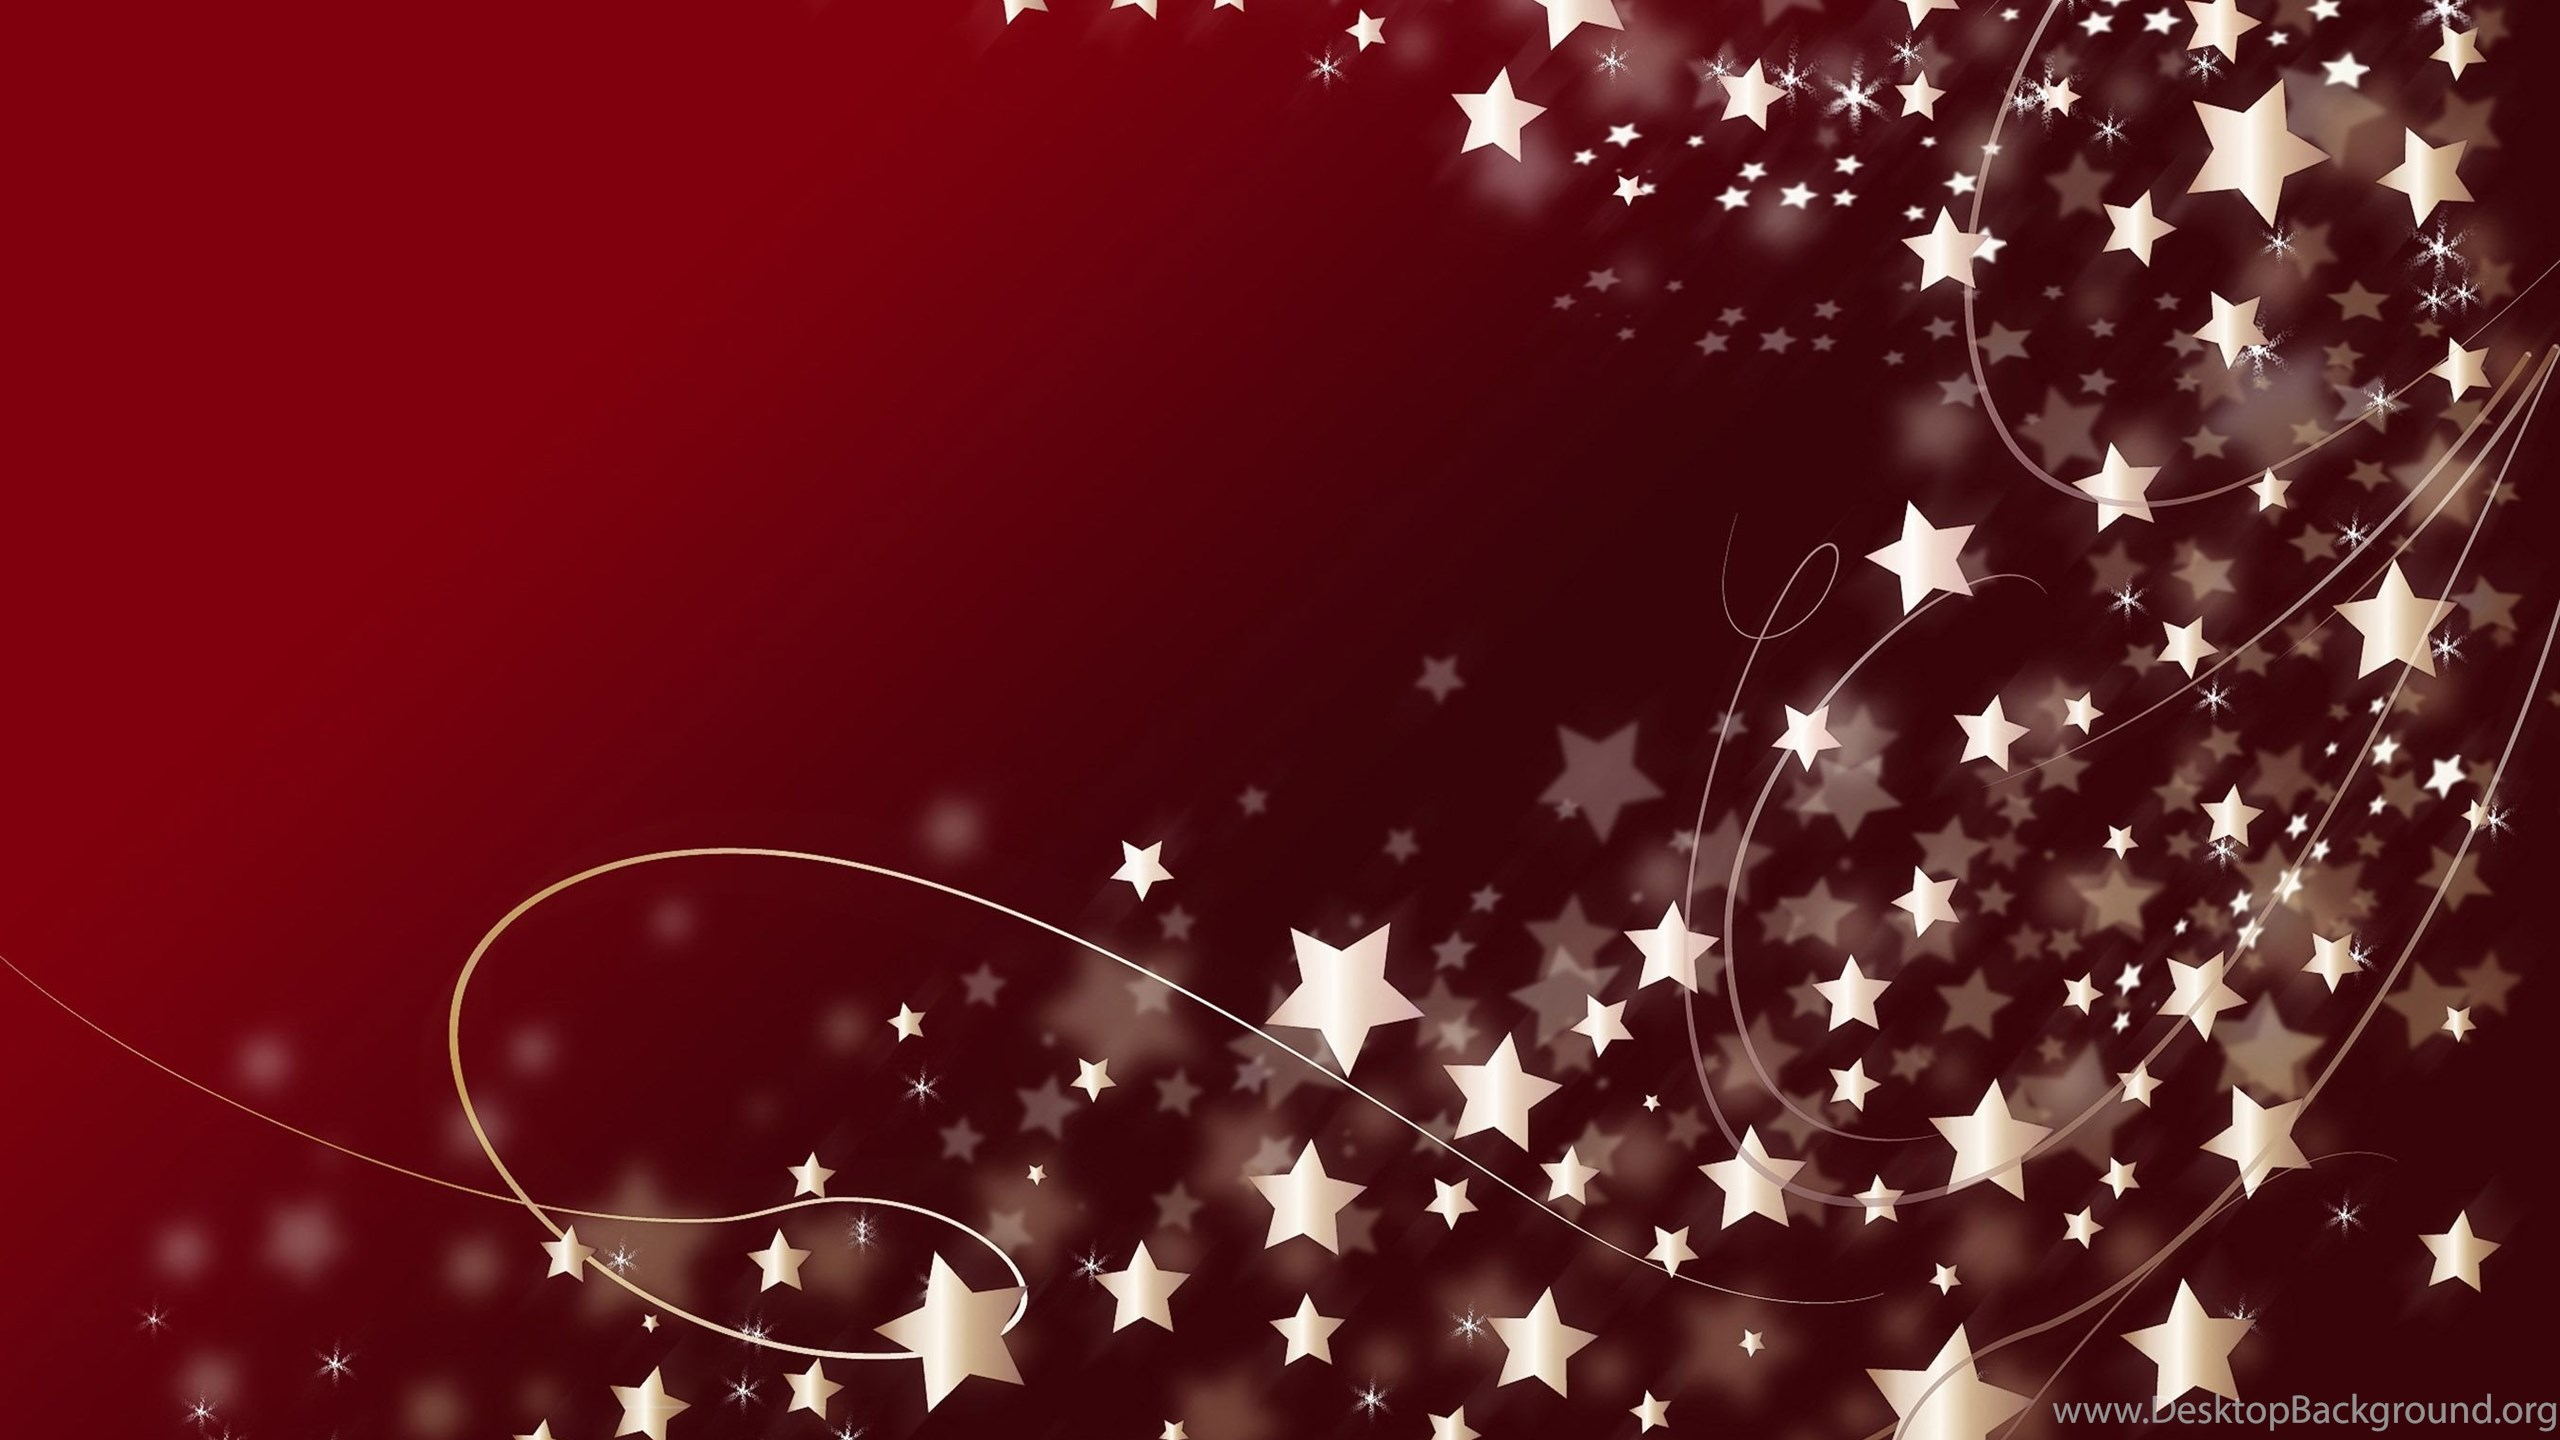 35 stars at xmas background images cards or christmas wallpapers netbook voltagebd Image collections